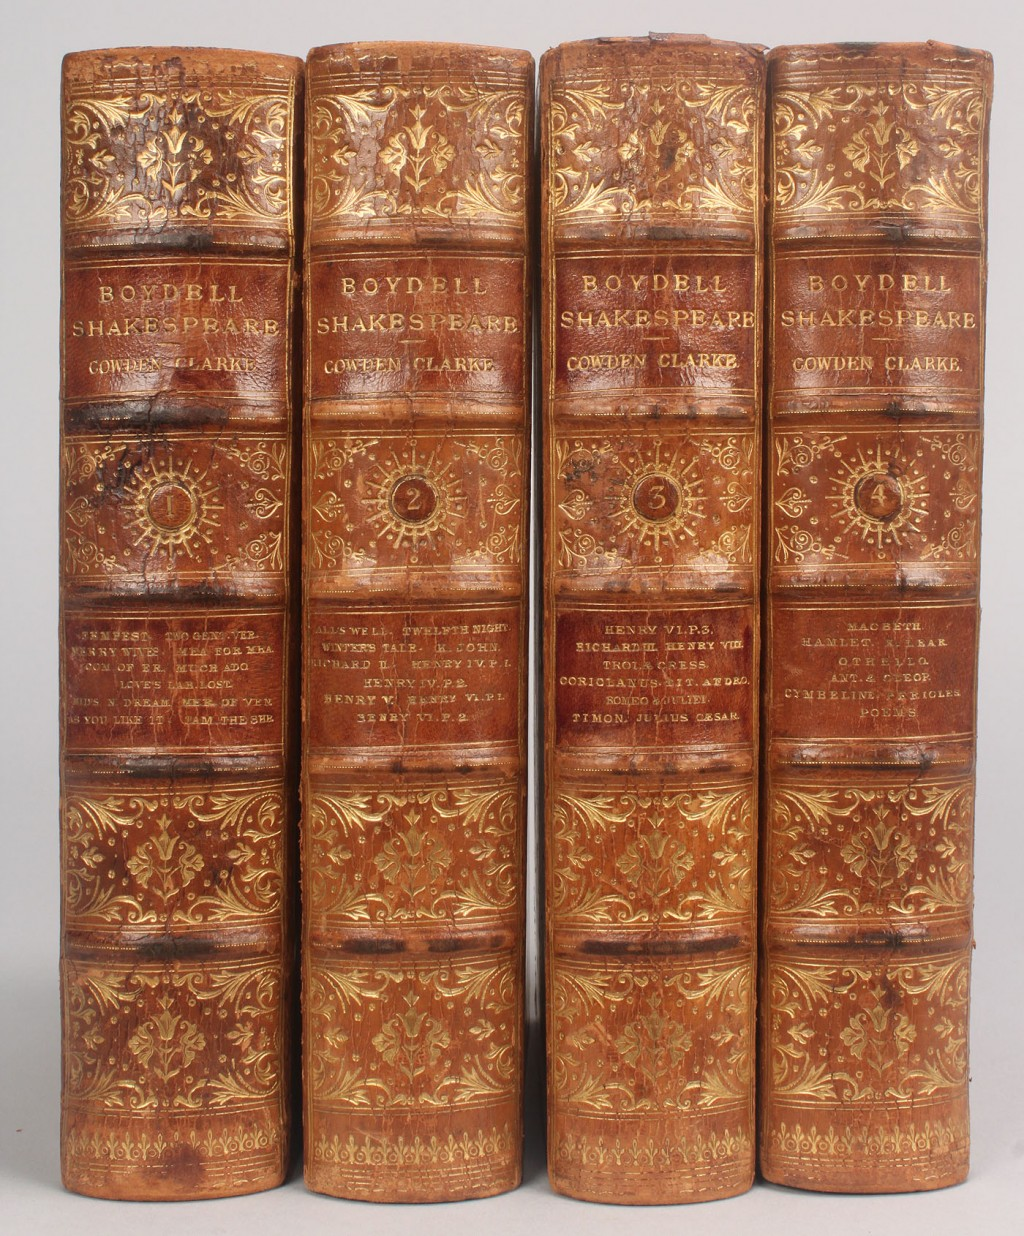 Lot 652: 4 Leather vols. Shakespeare, Boydell